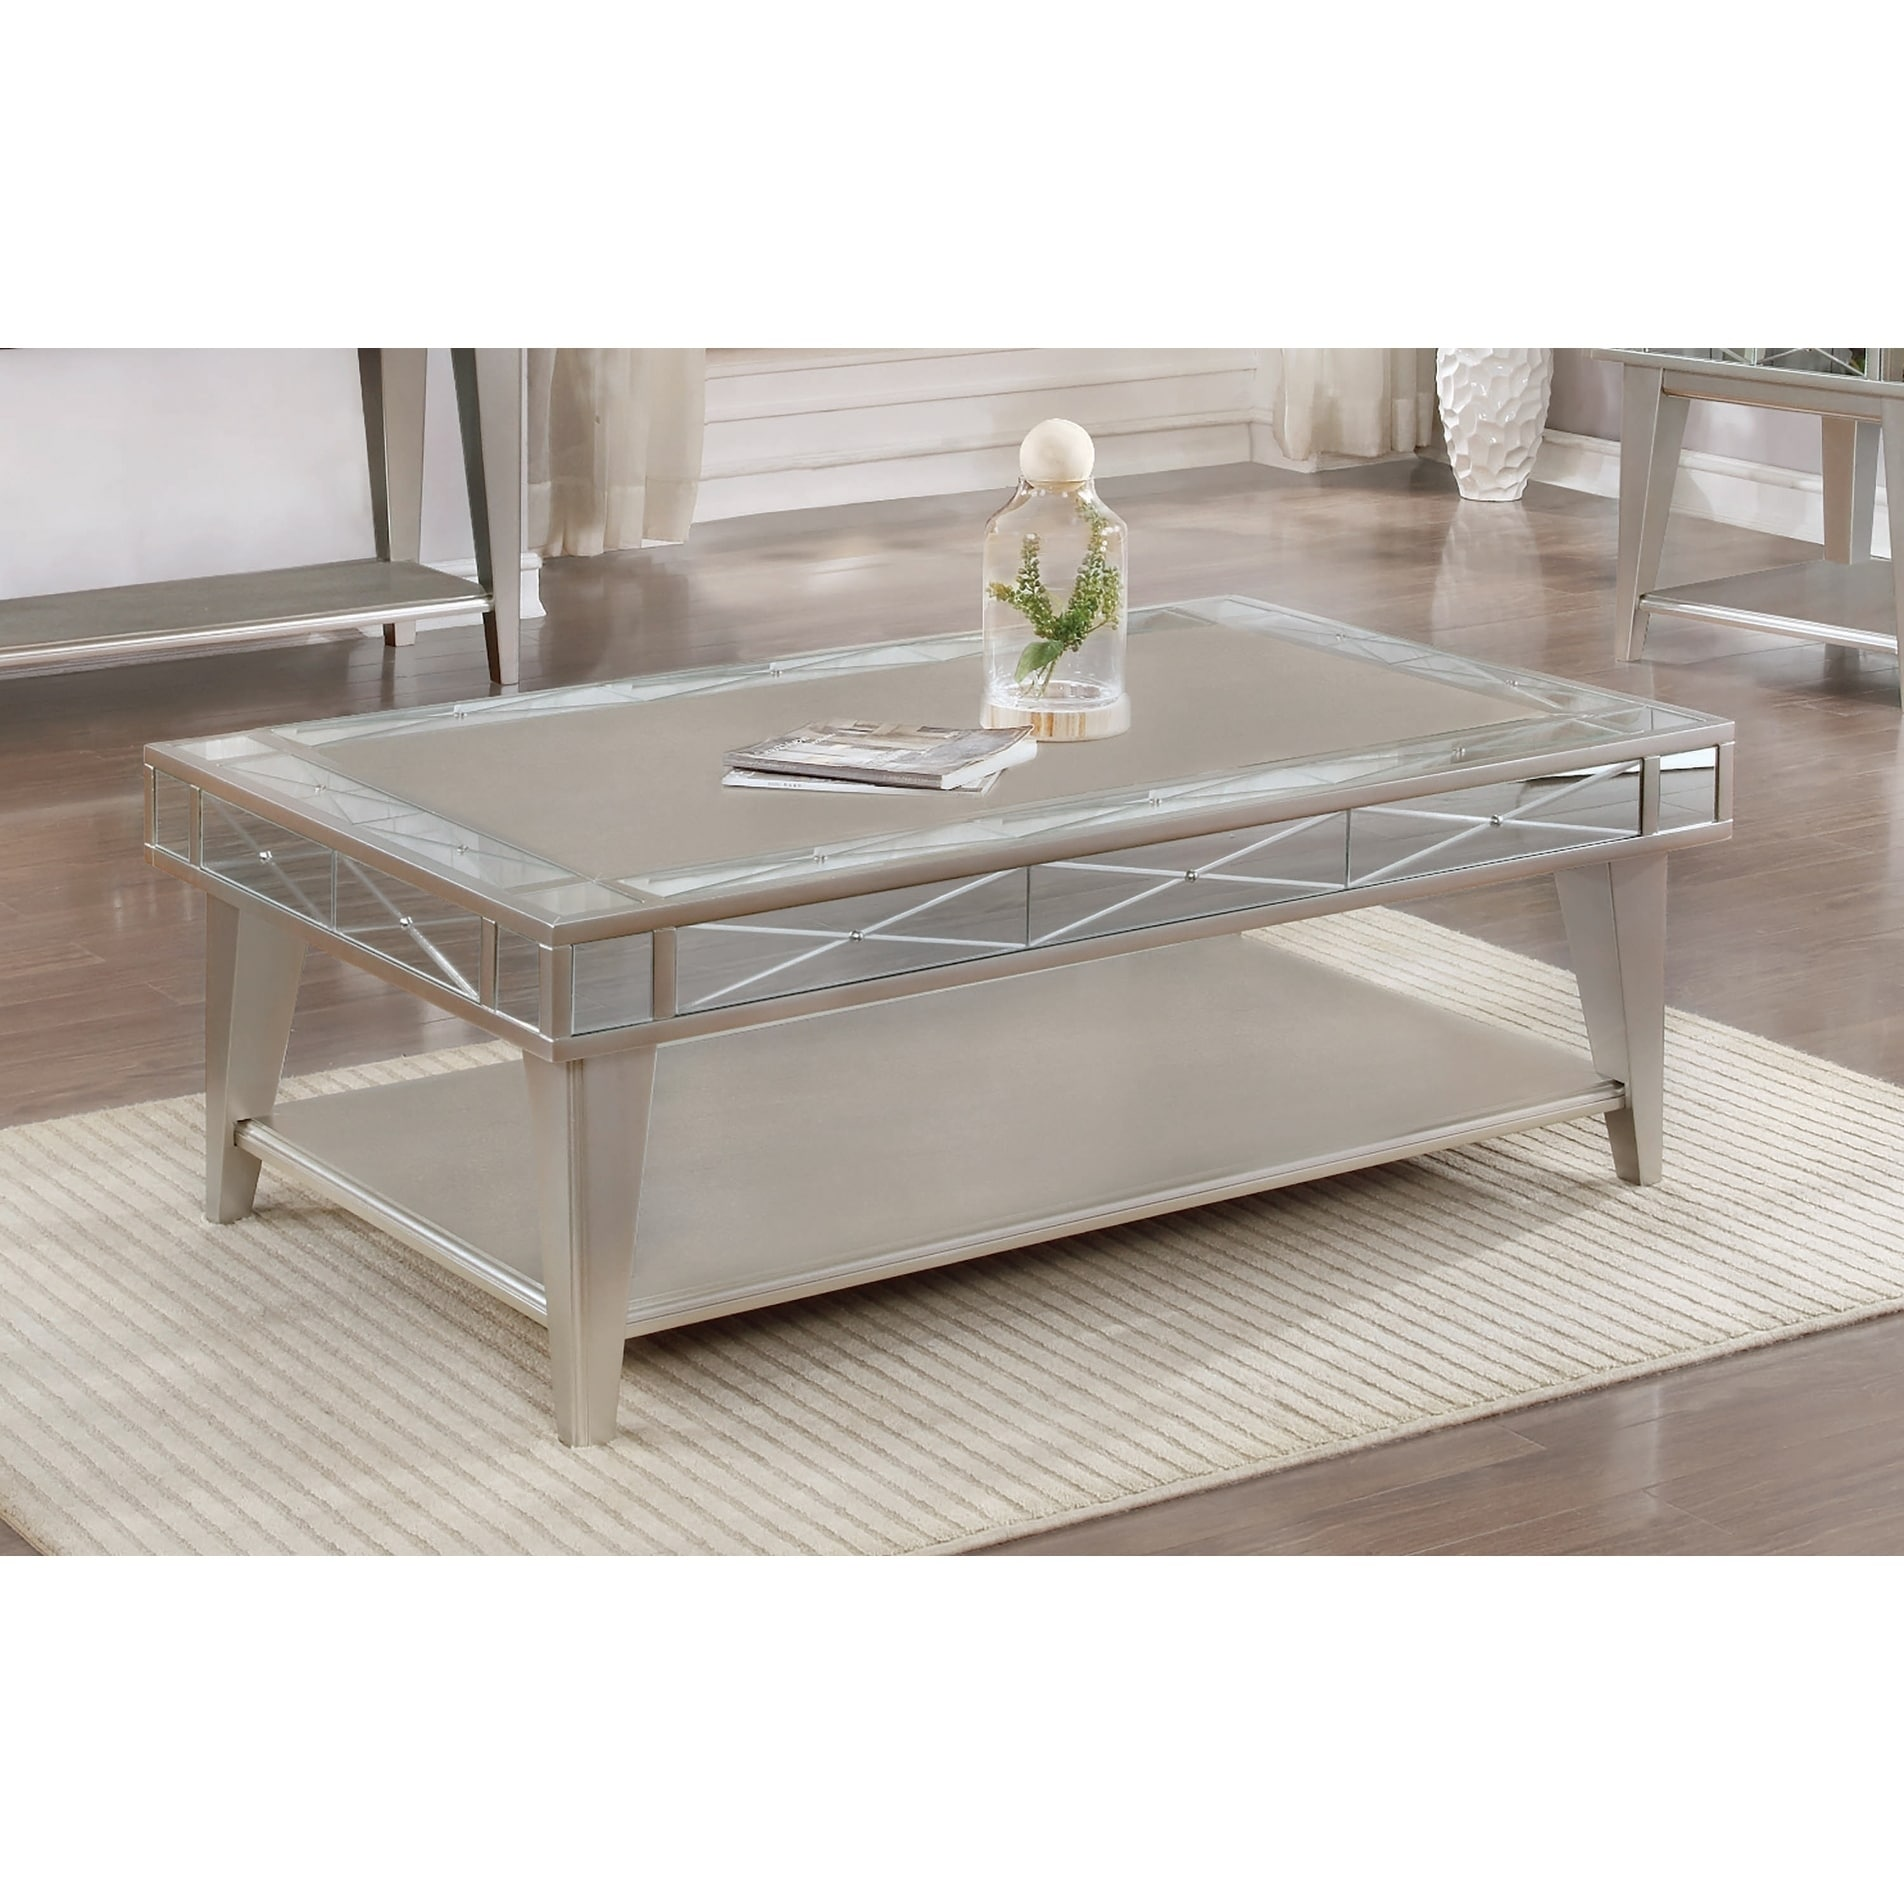 Mirrored Side Table Blingy And Beautiful Brand New